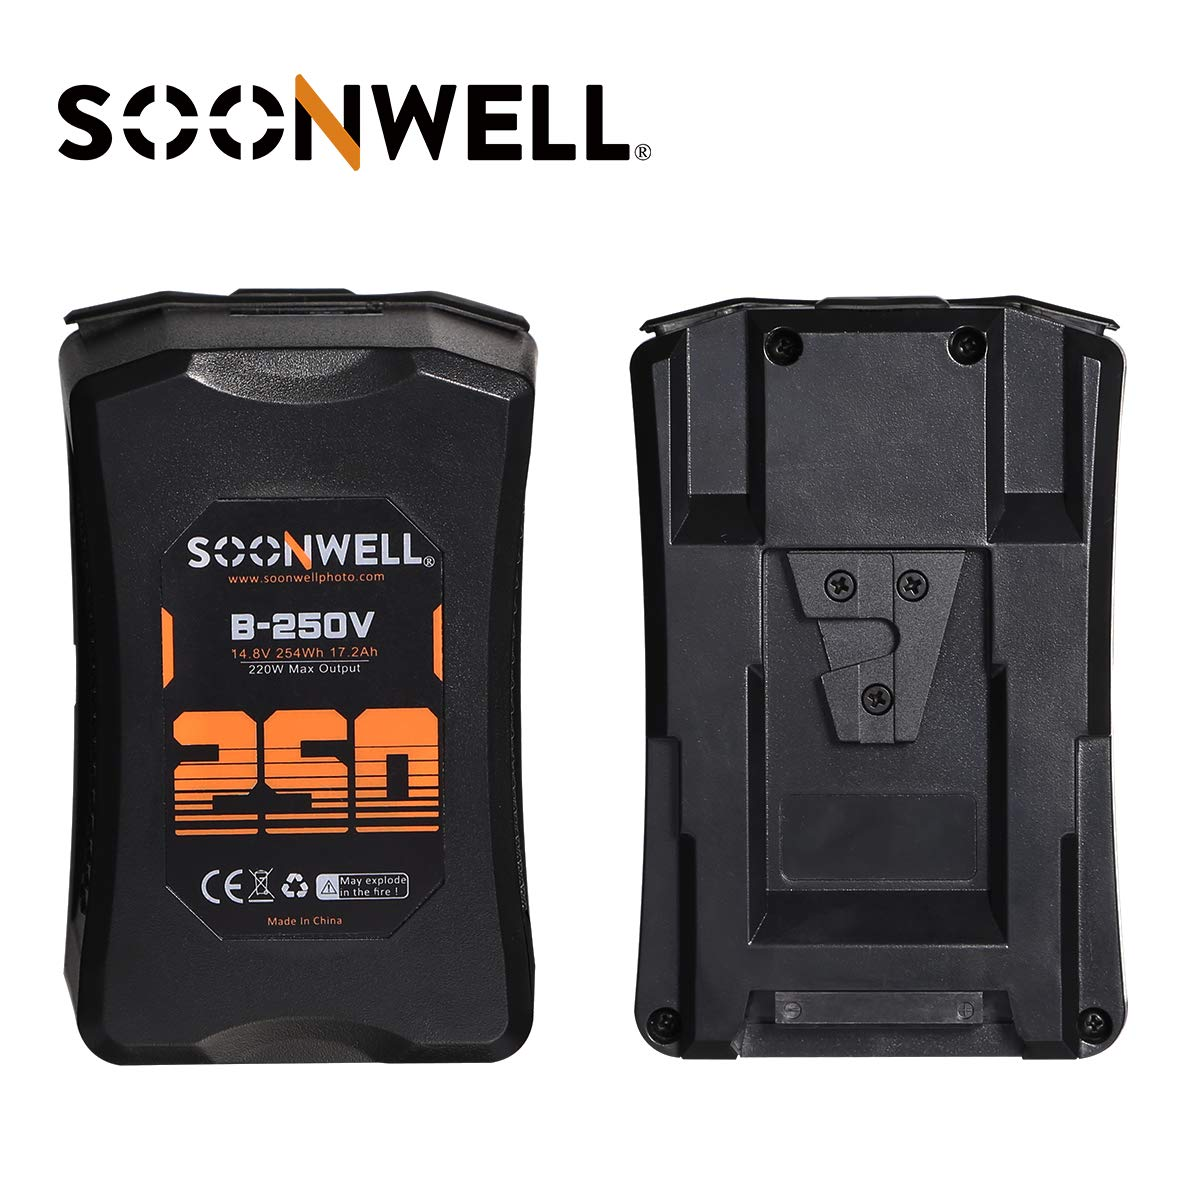 SOONWELL 250Wh Lithium-Ion V-Mount Battery High-Load Battery with Dual D-Tap & USB Port for BMPCC 4K Arri BMD DSLR and Other Camcorders by SOONWELL